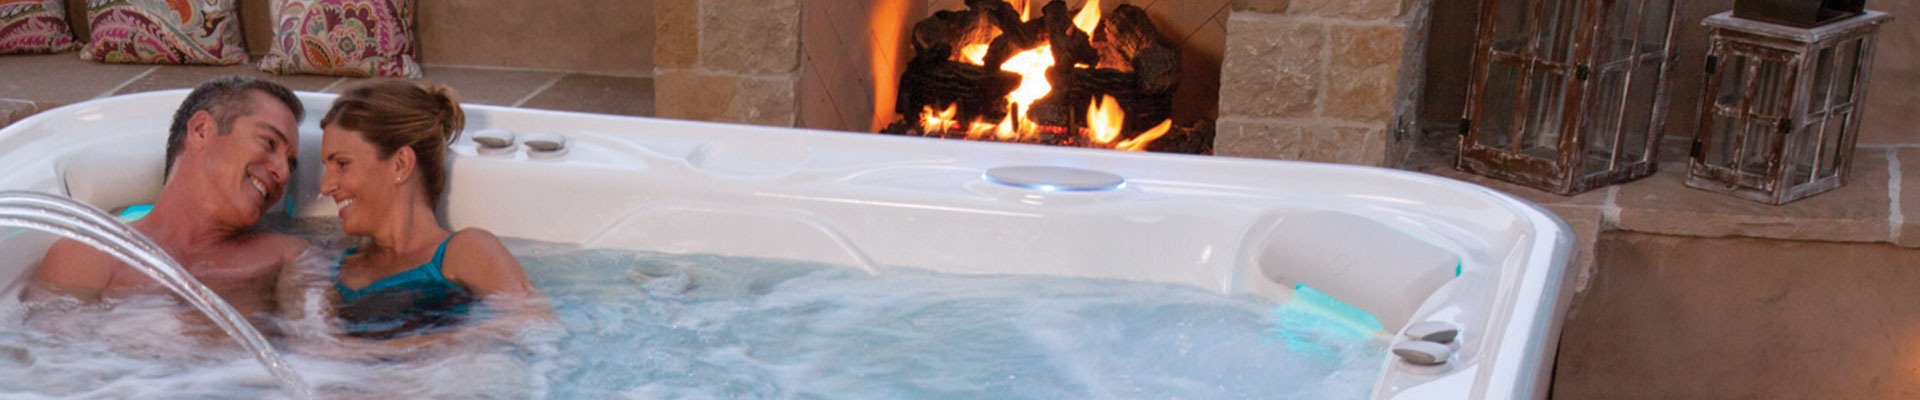 Did You Know This About the Amazing Backyard Spa?, Small Hot Tubs Minneapolis